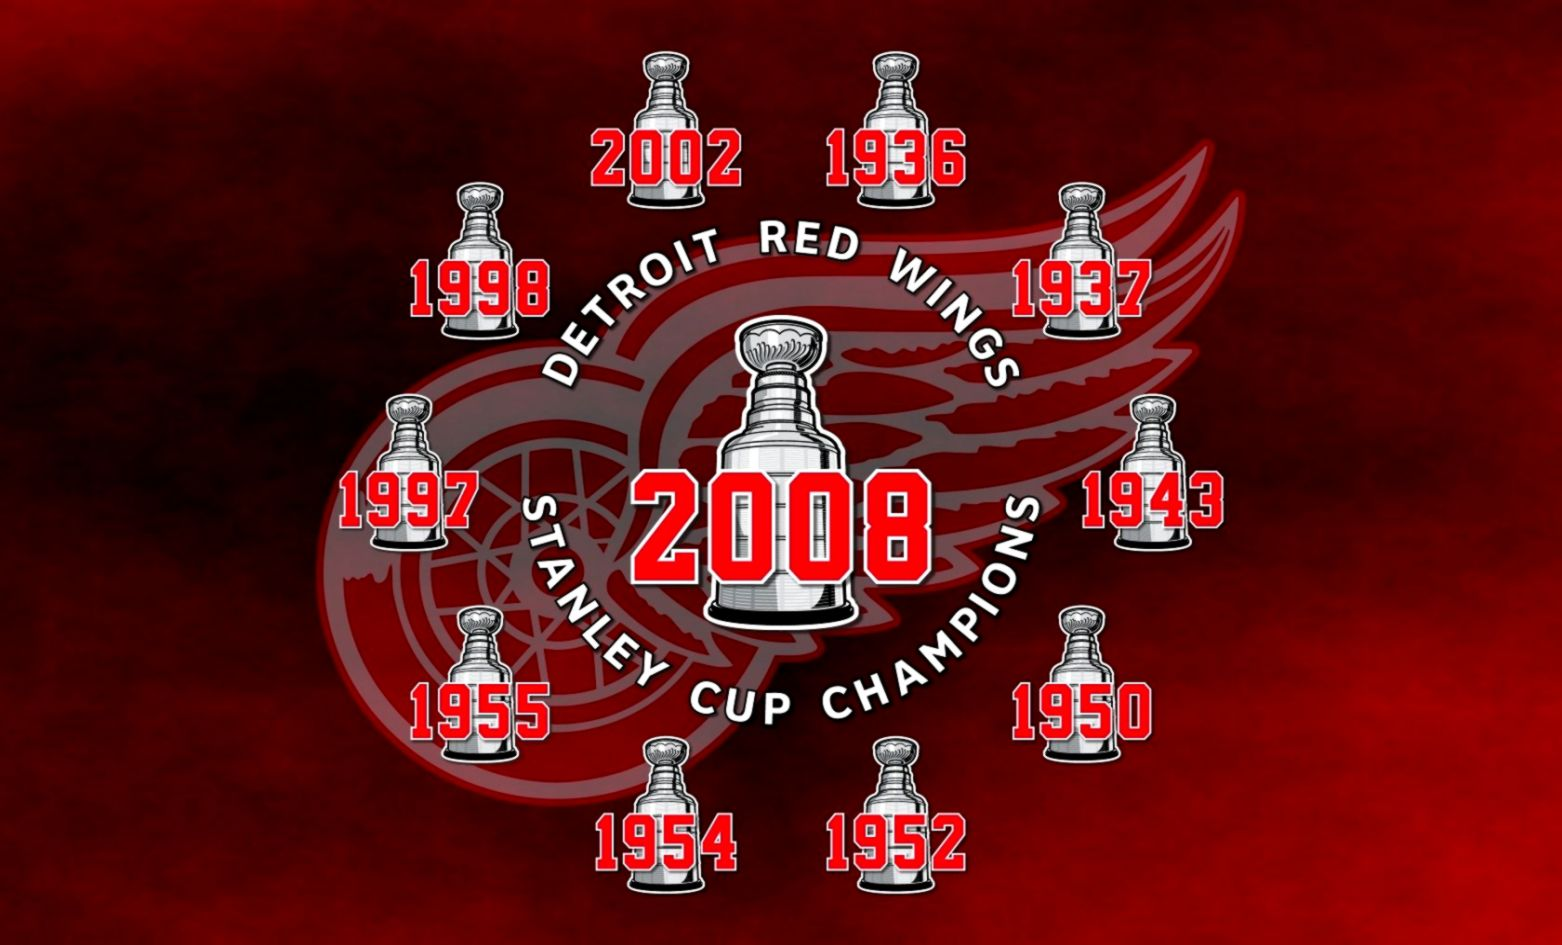 Red Wings Wallpaper Wallpapers Quality